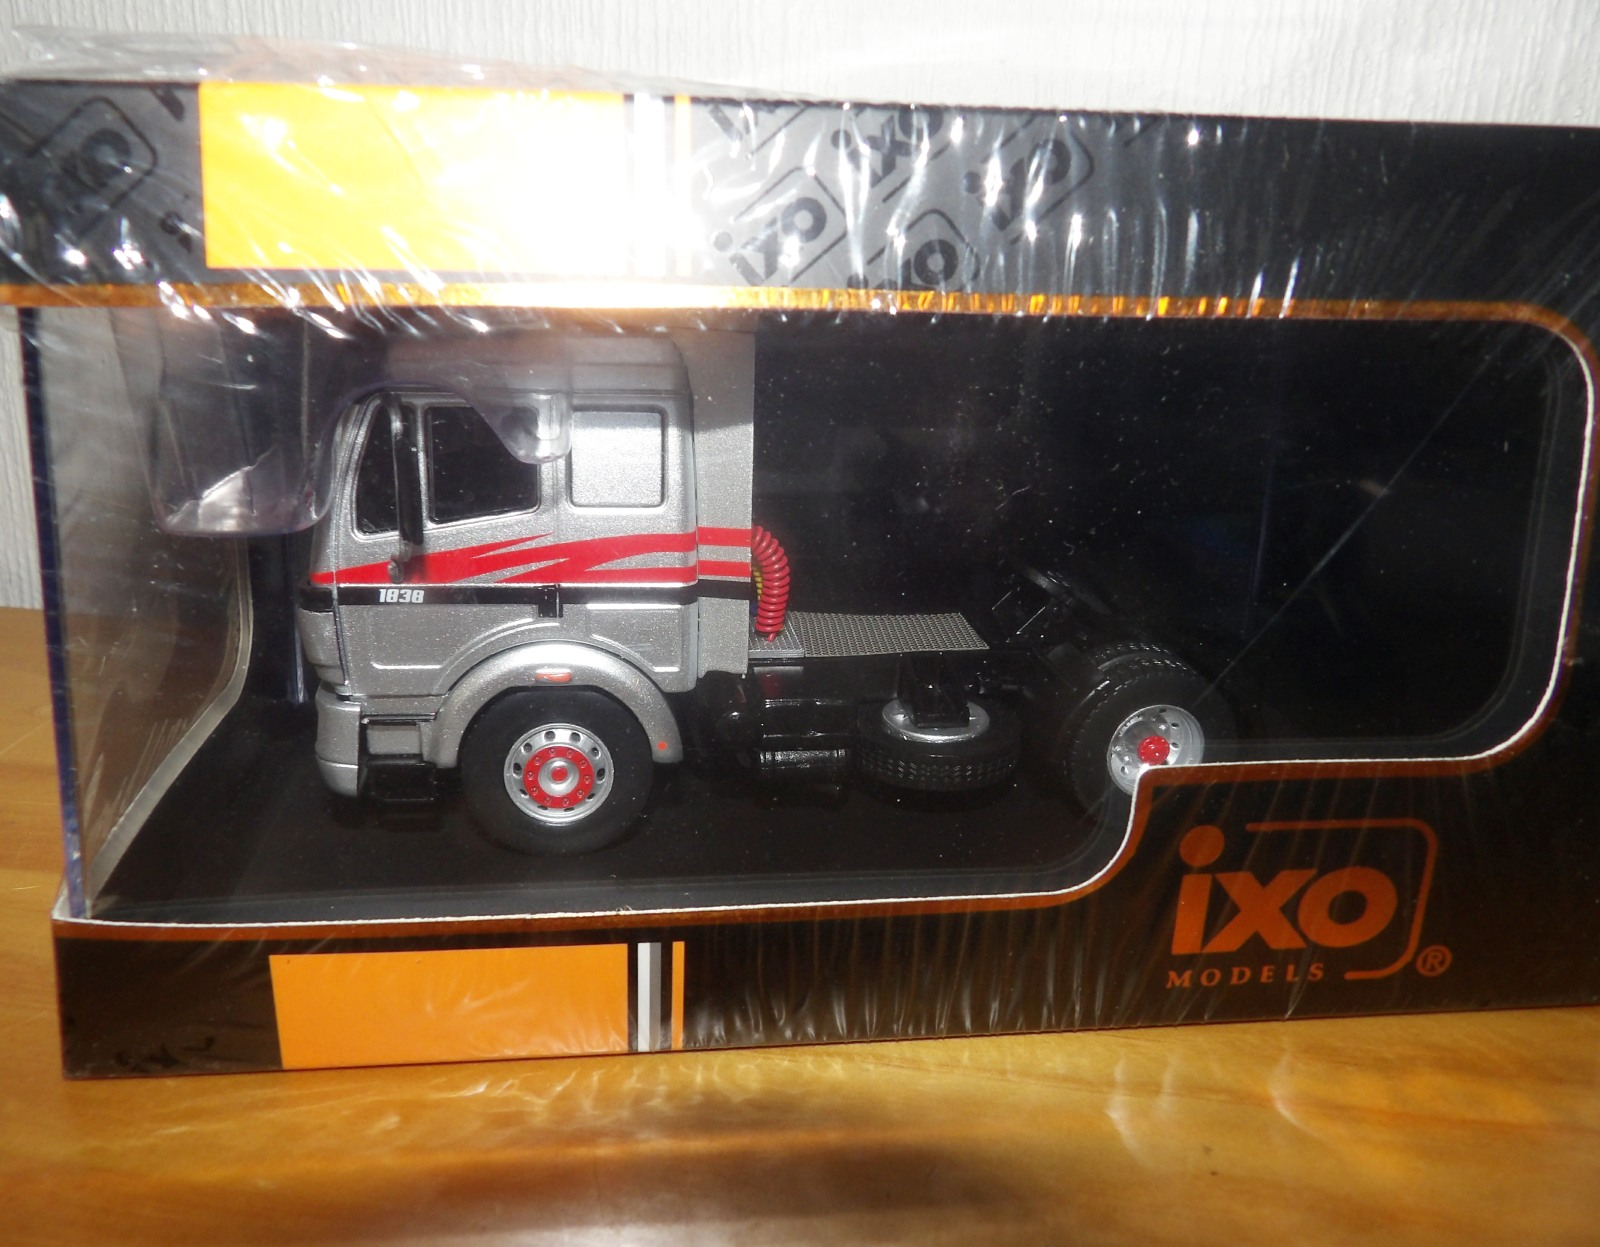 Lot 709 - 1.43 Scale IXO Mercedes Benz SK 11 1838 1994 Tractor Unit. P&P Group 1 (£14+VAT for the first lot